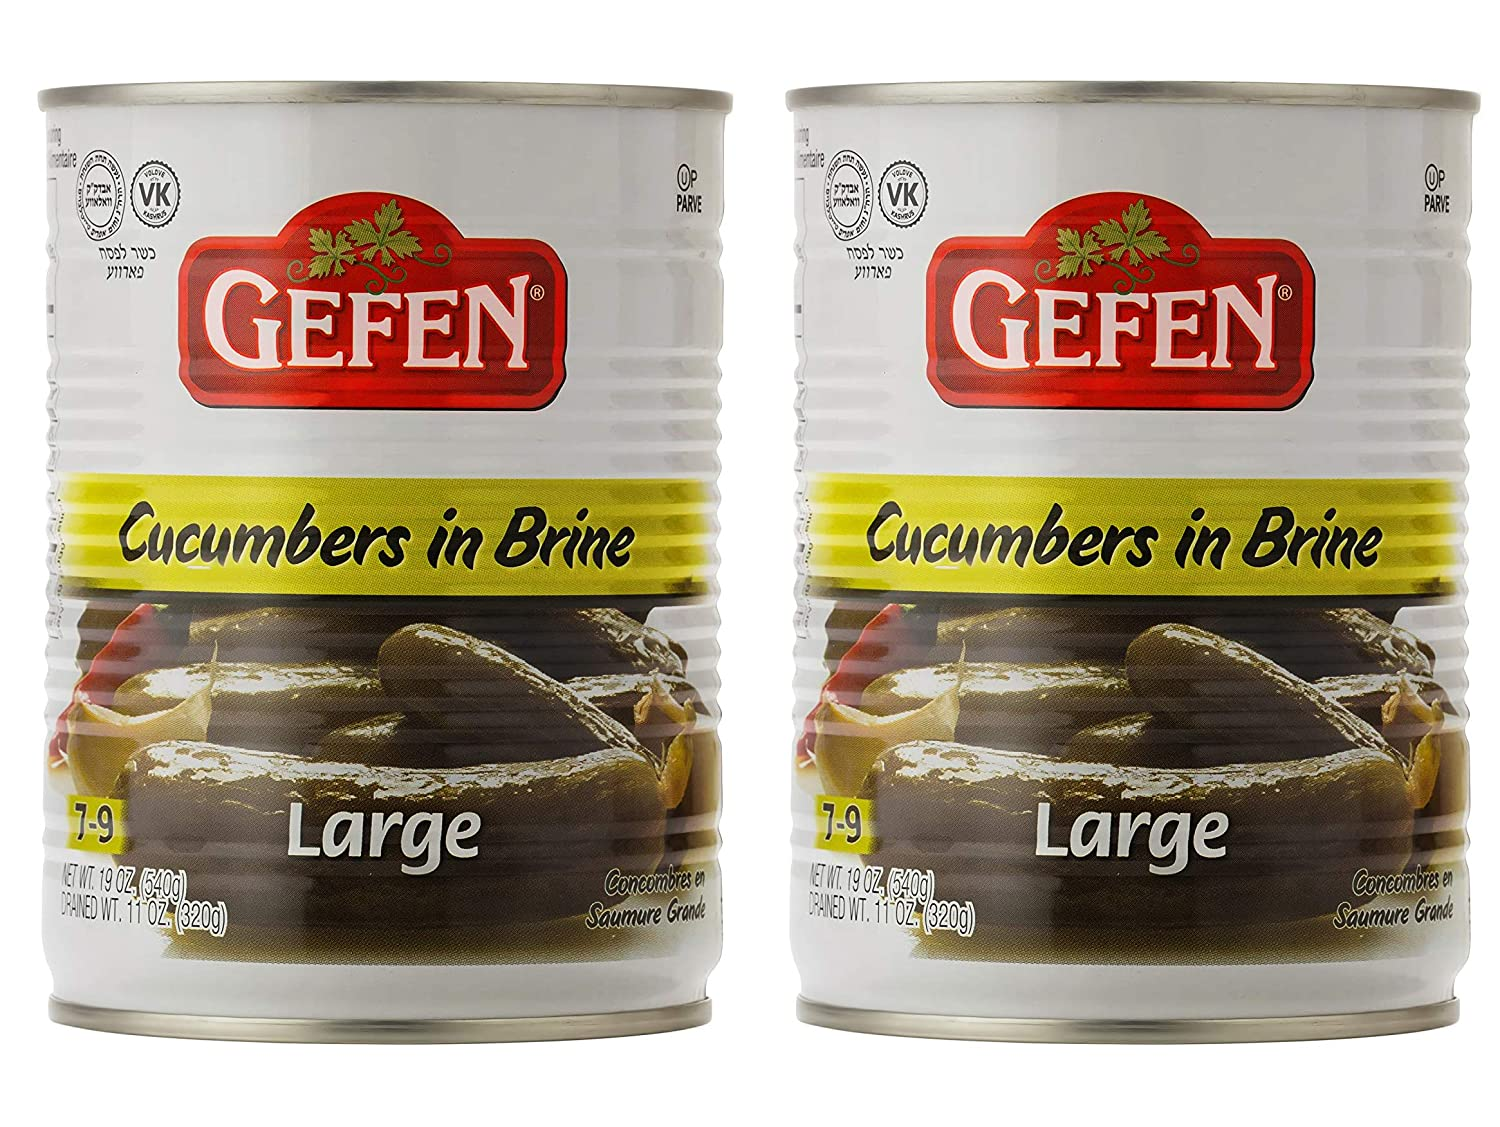 Max 80% OFF Gefen Large Pickled Cucumber in Brine 2 19oz Pack Free shipping New